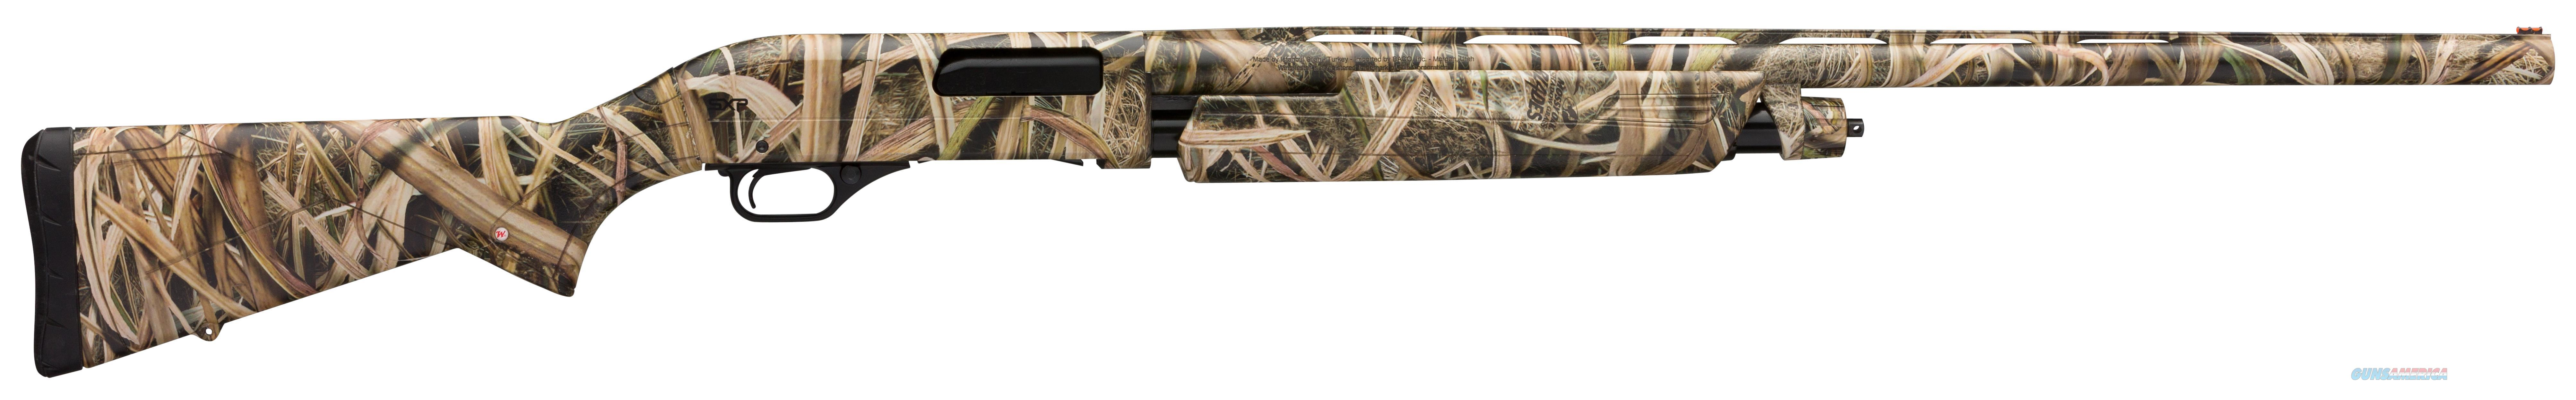 "Winchester Guns 512270692 Sxp Pump 20 Gauge 28"" 3"" Mossy Oak Shadow Grass Blades Synthetic Stk Rcvr 512270692  Guns > Shotguns > W Misc Shotguns"